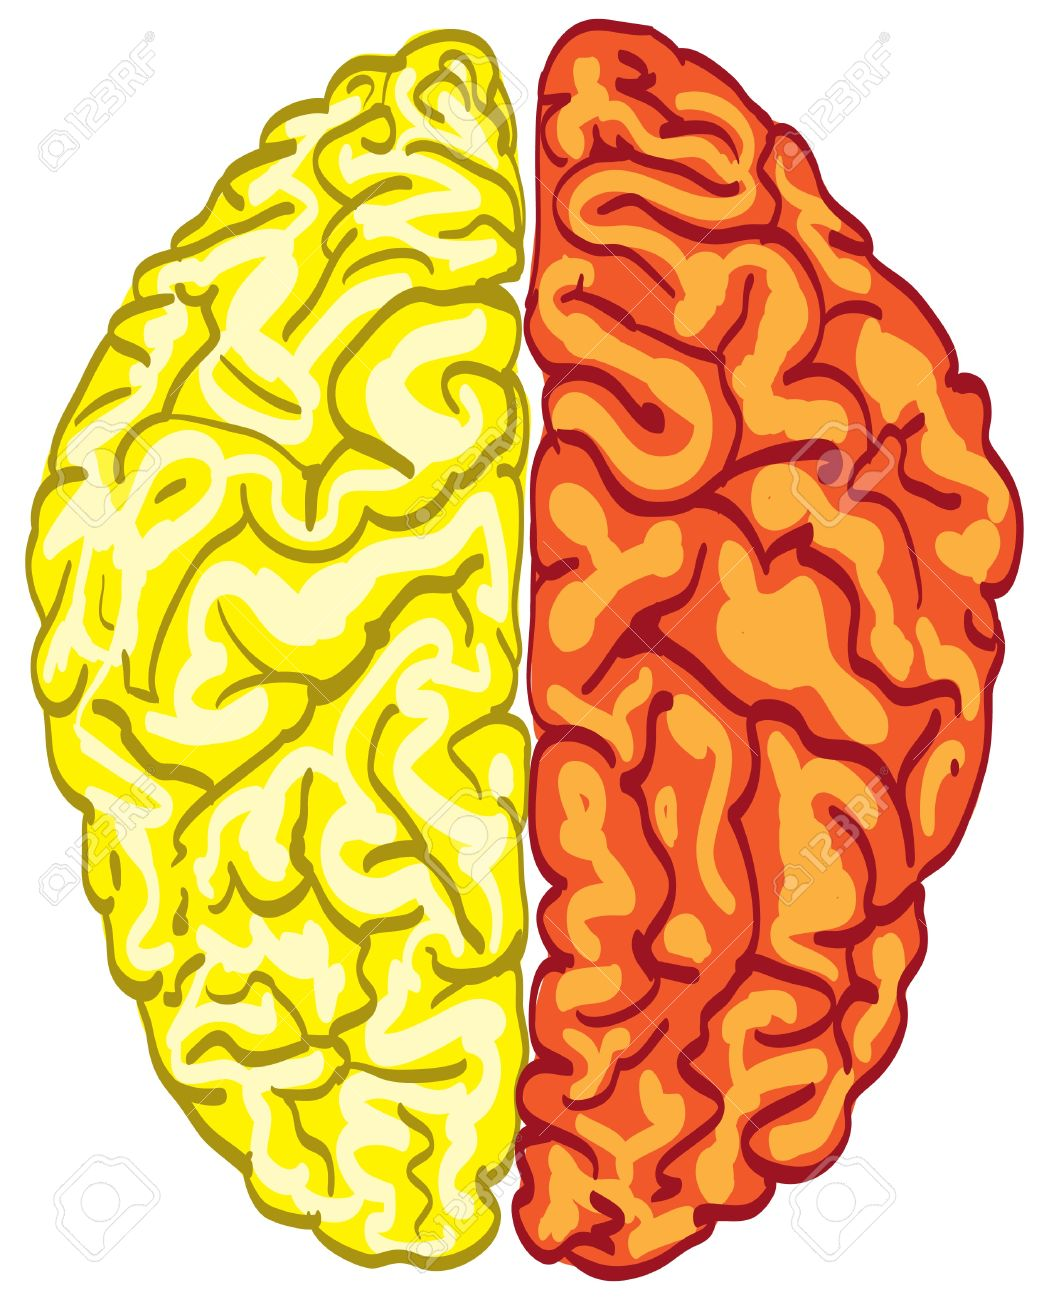 Human Color Brain Isolated.